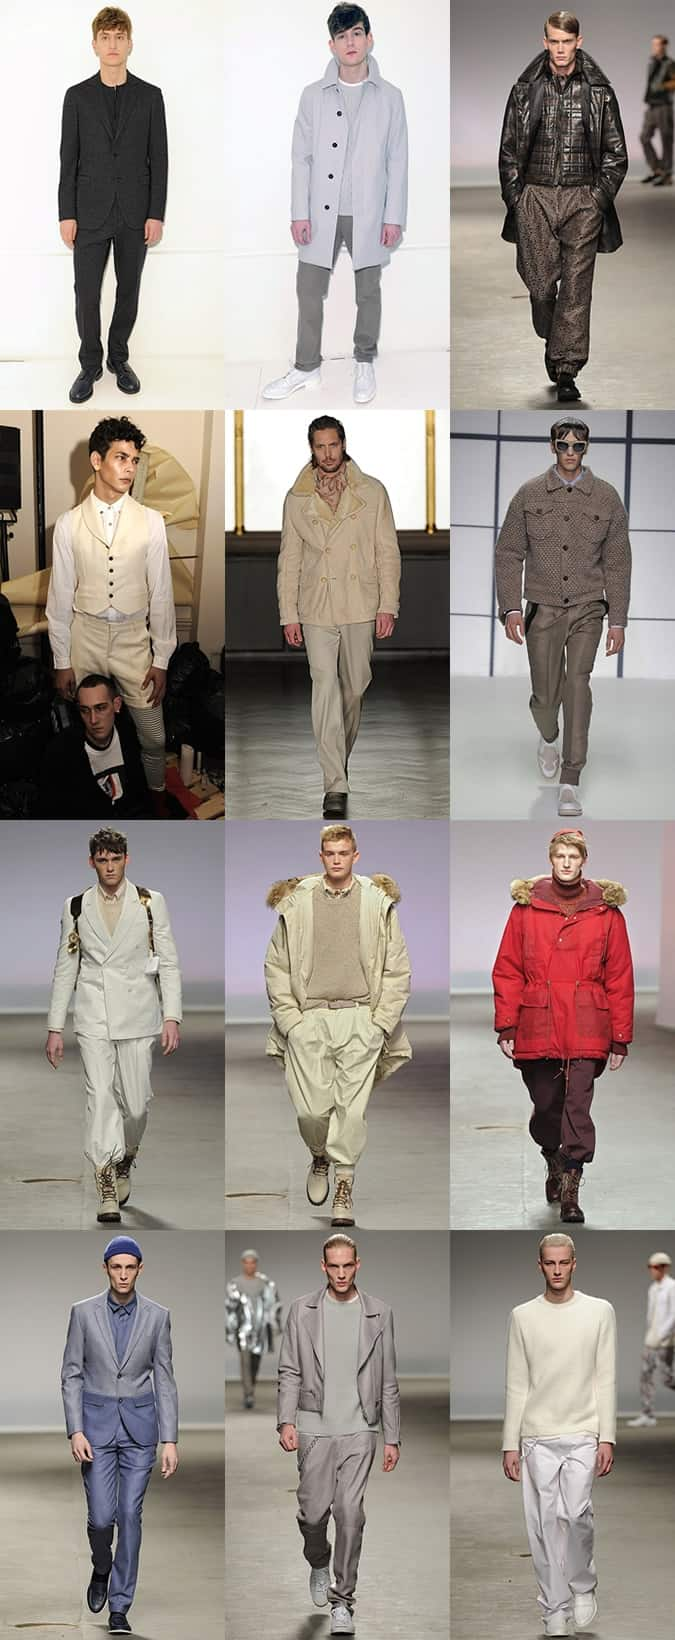 Tonal Outfits on the LC:M AW13 Runways